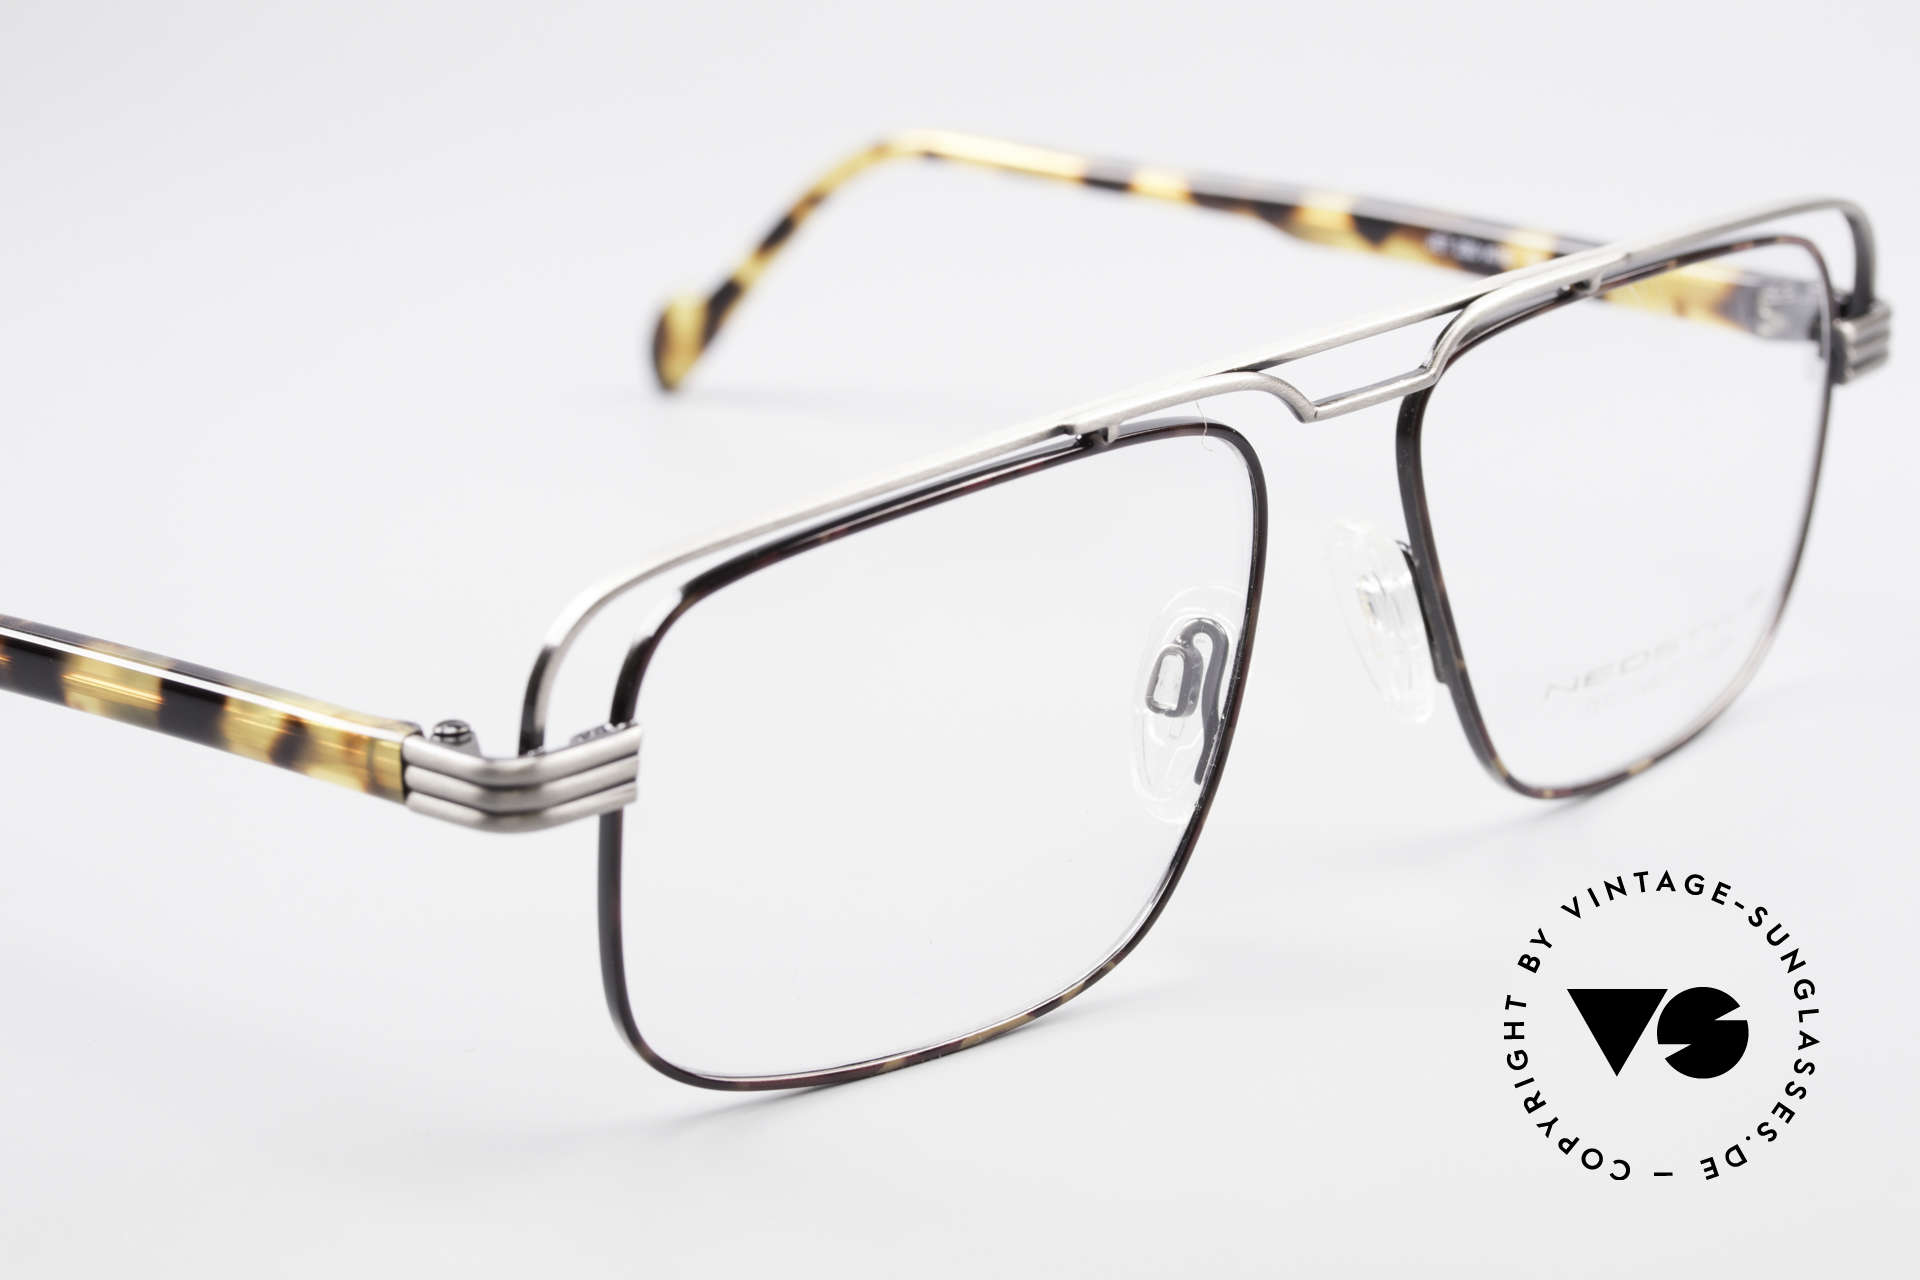 Neostyle Jet 230 80's Vintage No Retro Glasses, NO RETRO EYEWEAR, but a 30 years old ORIGINAL, Made for Men